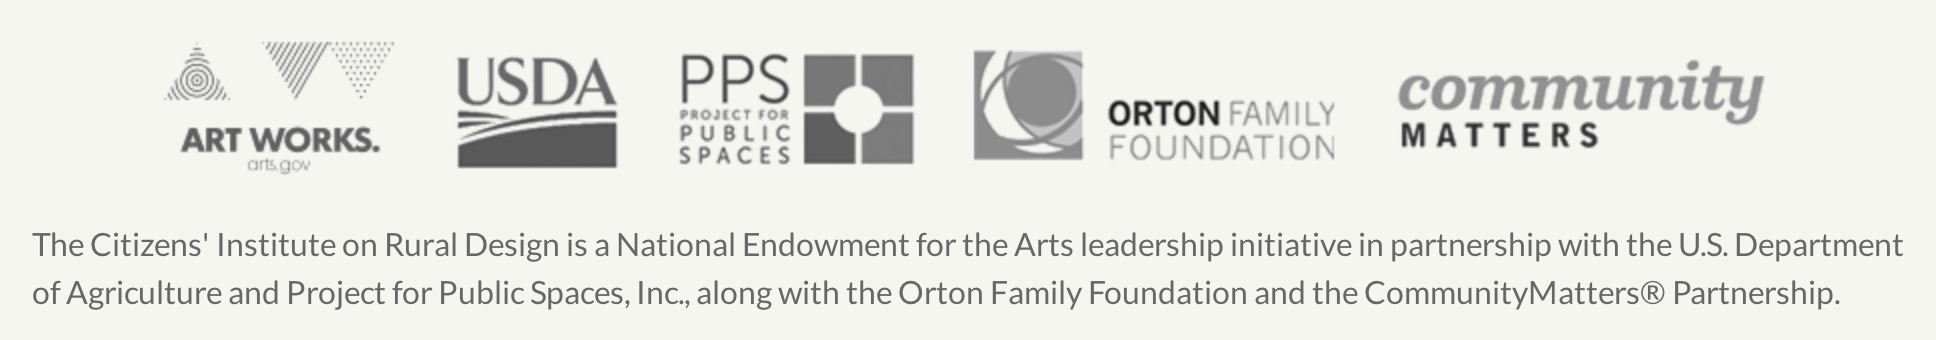 The Citizens' Institute on Rural Design is a National Endowment for the Arts leadership initiative in partnership with the U.S. Department of Agriculture and Project for Public Spaces, Inc., along with the Orton Family Foundation and the CommunityMatters® Partnership.